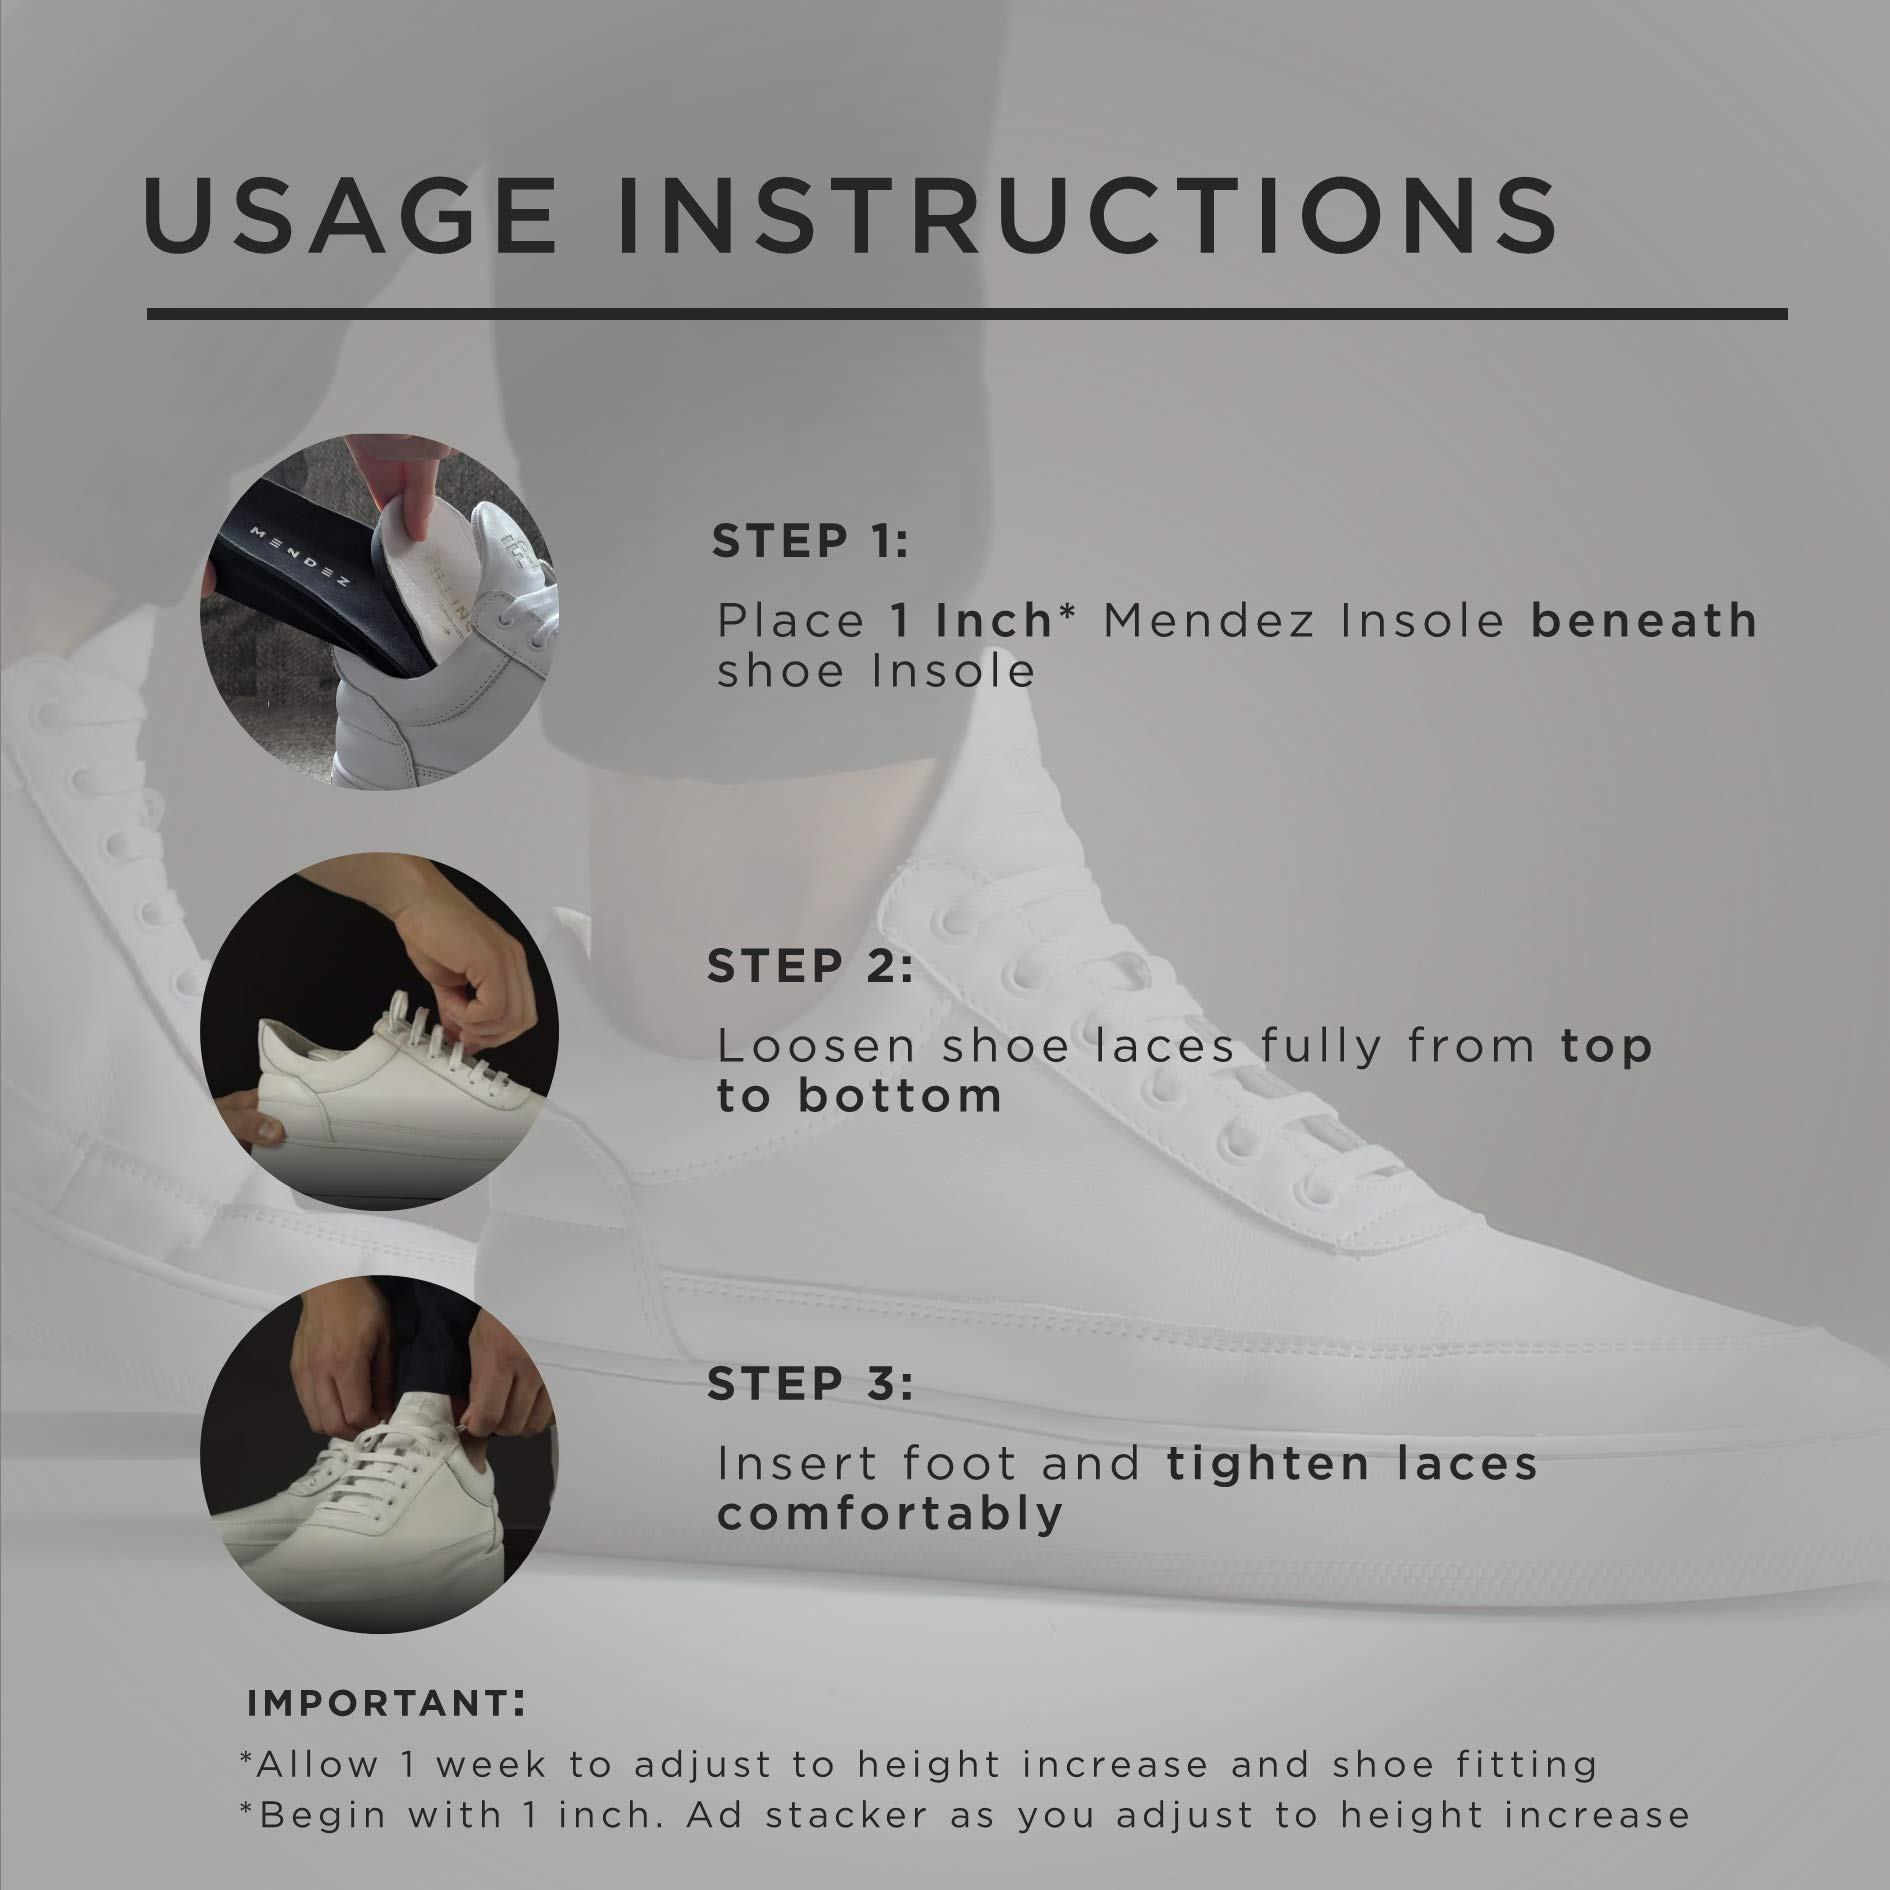 Mendez™ Premium Height Increase Insole - Advanced Comfort and Ergonomics, Shoe Lifts for Men & Women, Heel Lifts for Shoes, Elevator Shoe, Shoe Lift, Height Increasing Insole Kit, 1.5 inch by Mendez Insole Design Inc. (Image #5)